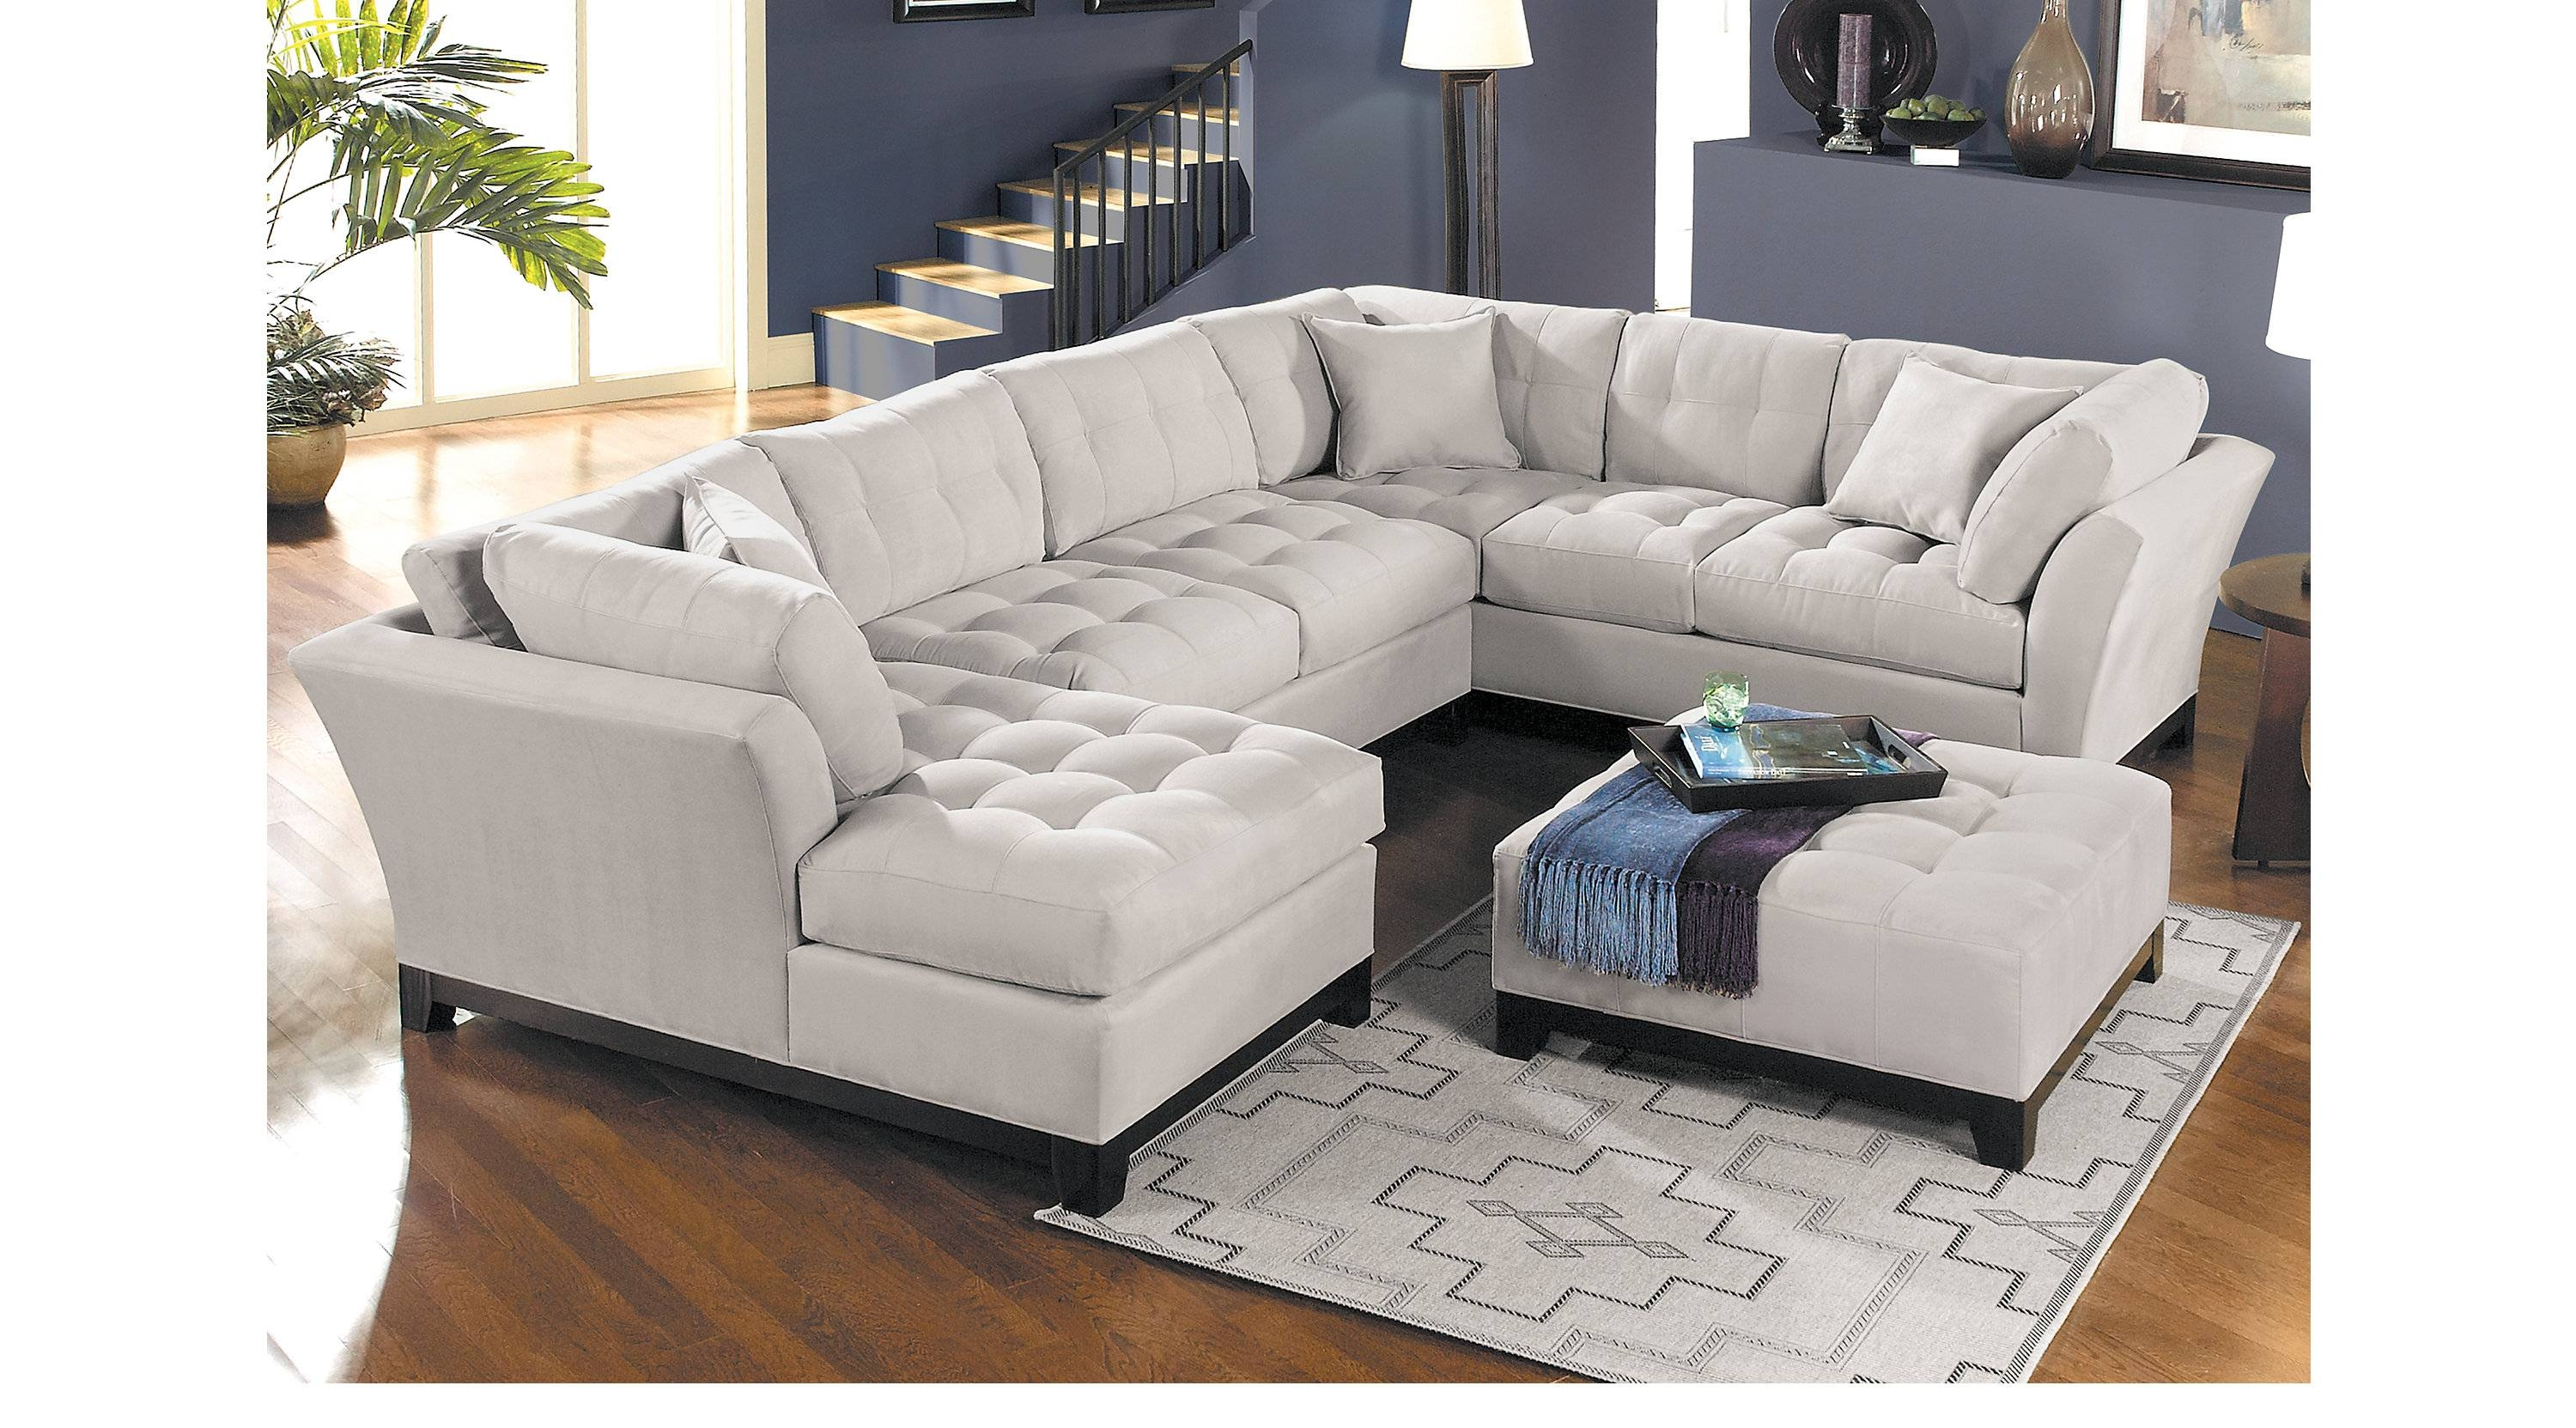 30 Best Ideas Of Cindy Crawford Home Sectional Sofa ~ Cindy Crawford Home Sofa